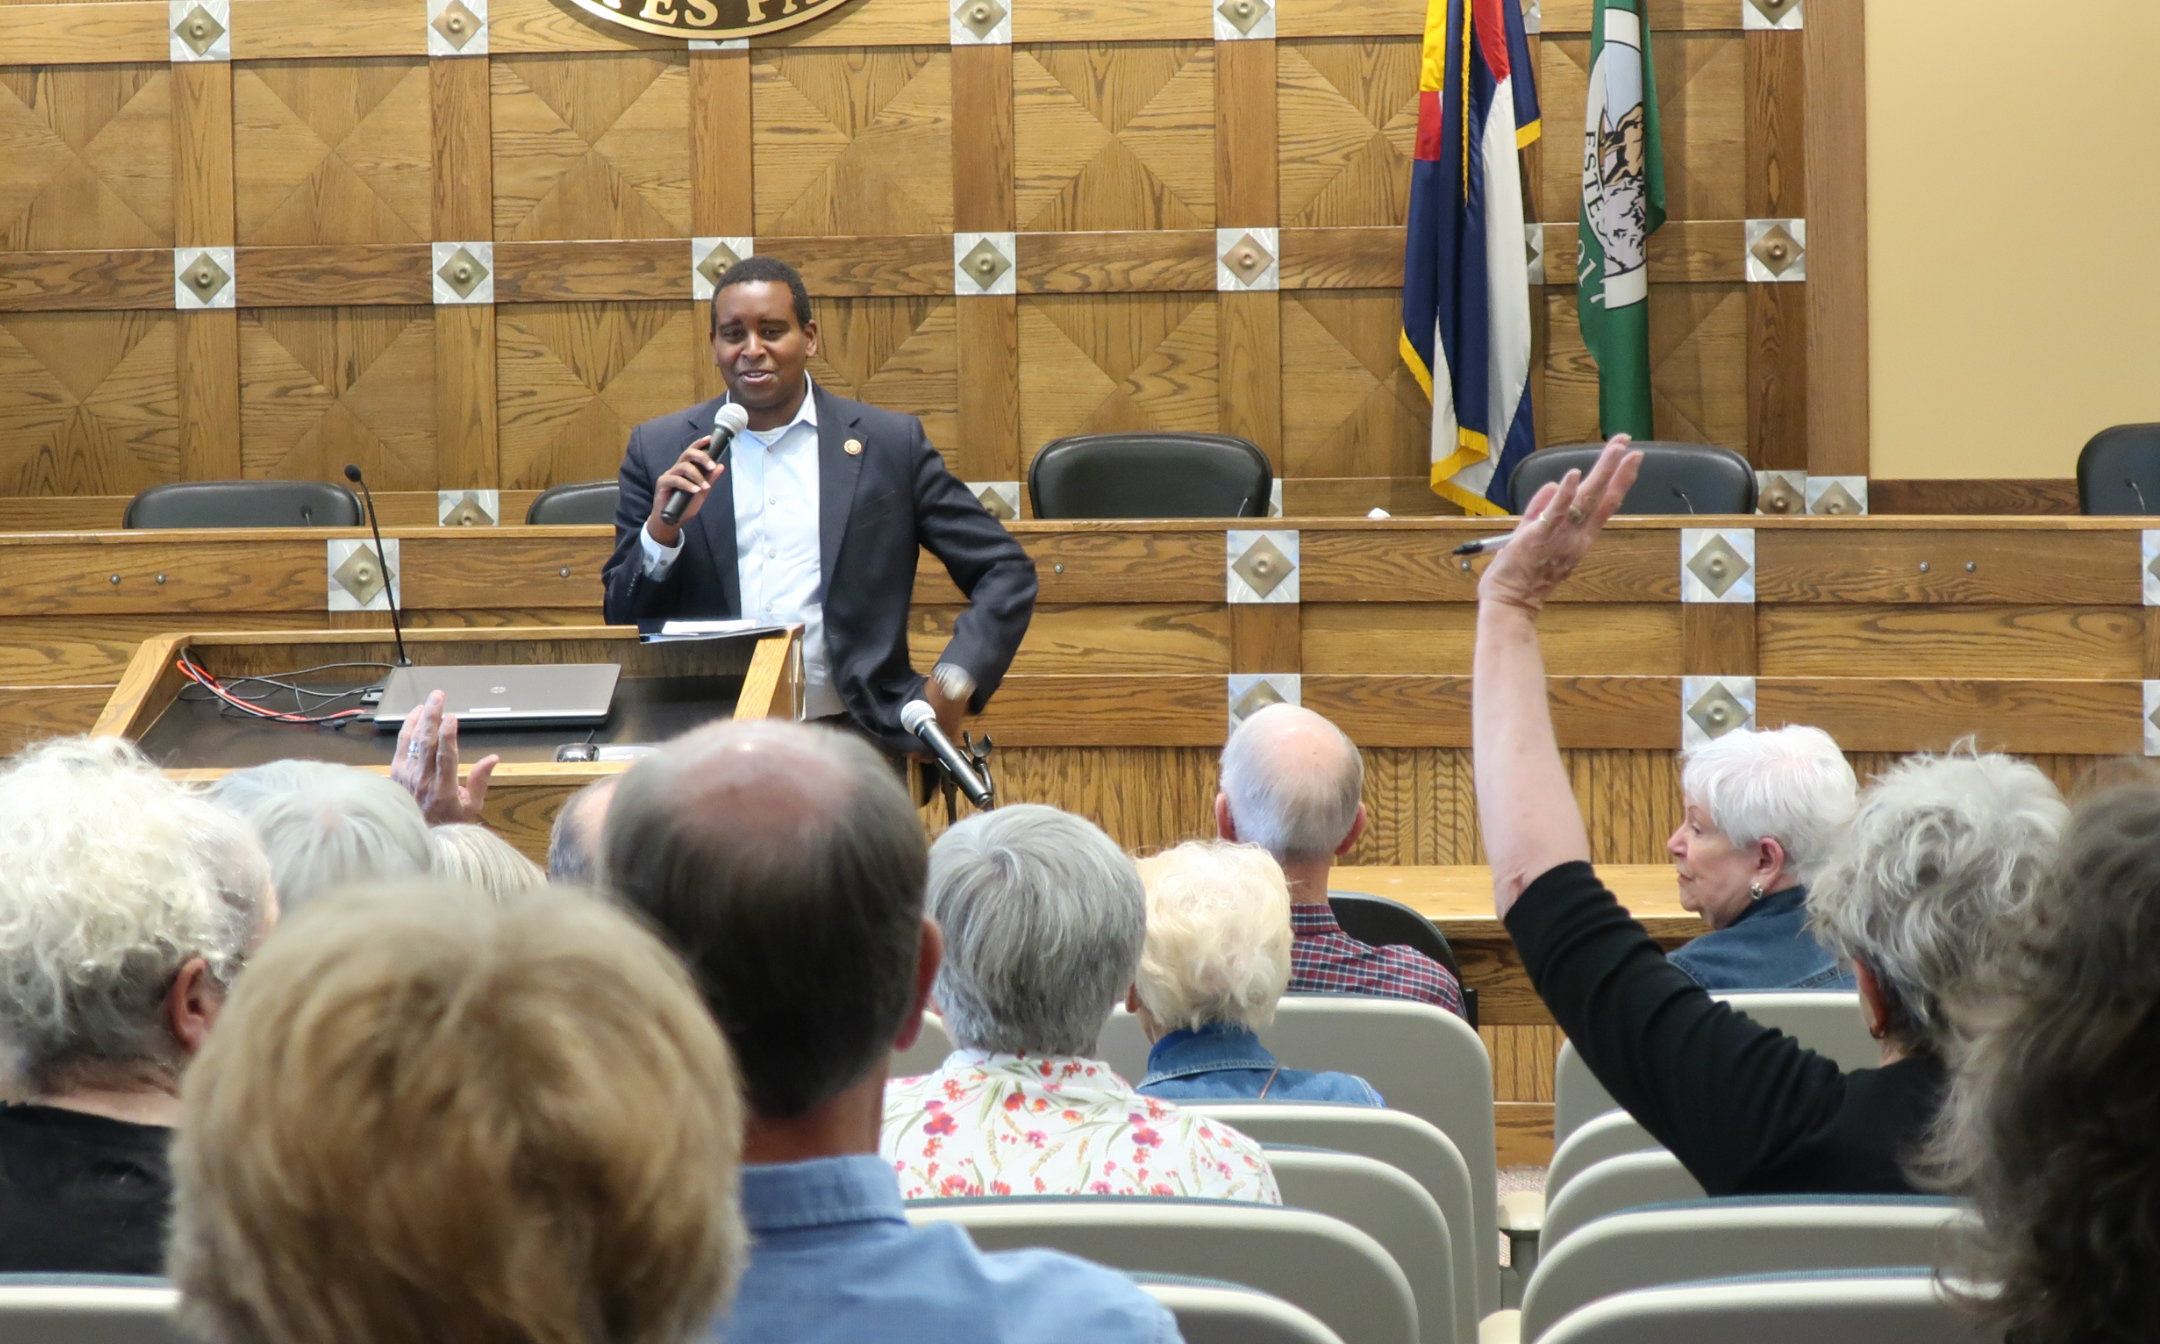 Rep. Joe Neguse at a town hall in Estes Park on Aug. 12, 2019.